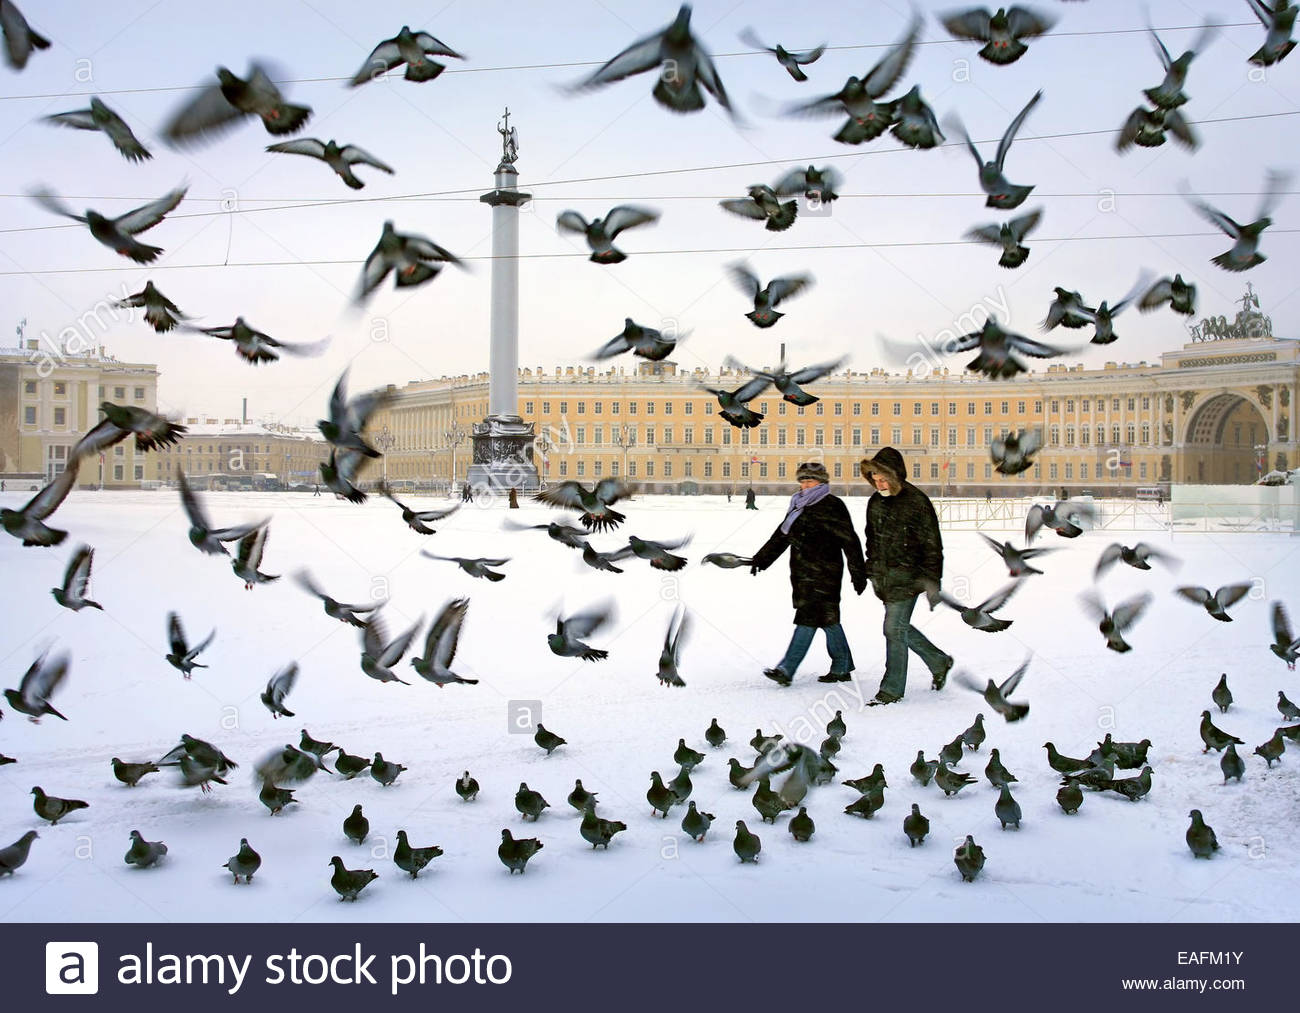 Birds on the Palace Square, Alexander Column. Saint-Petersburg, Russia. - Stock Image